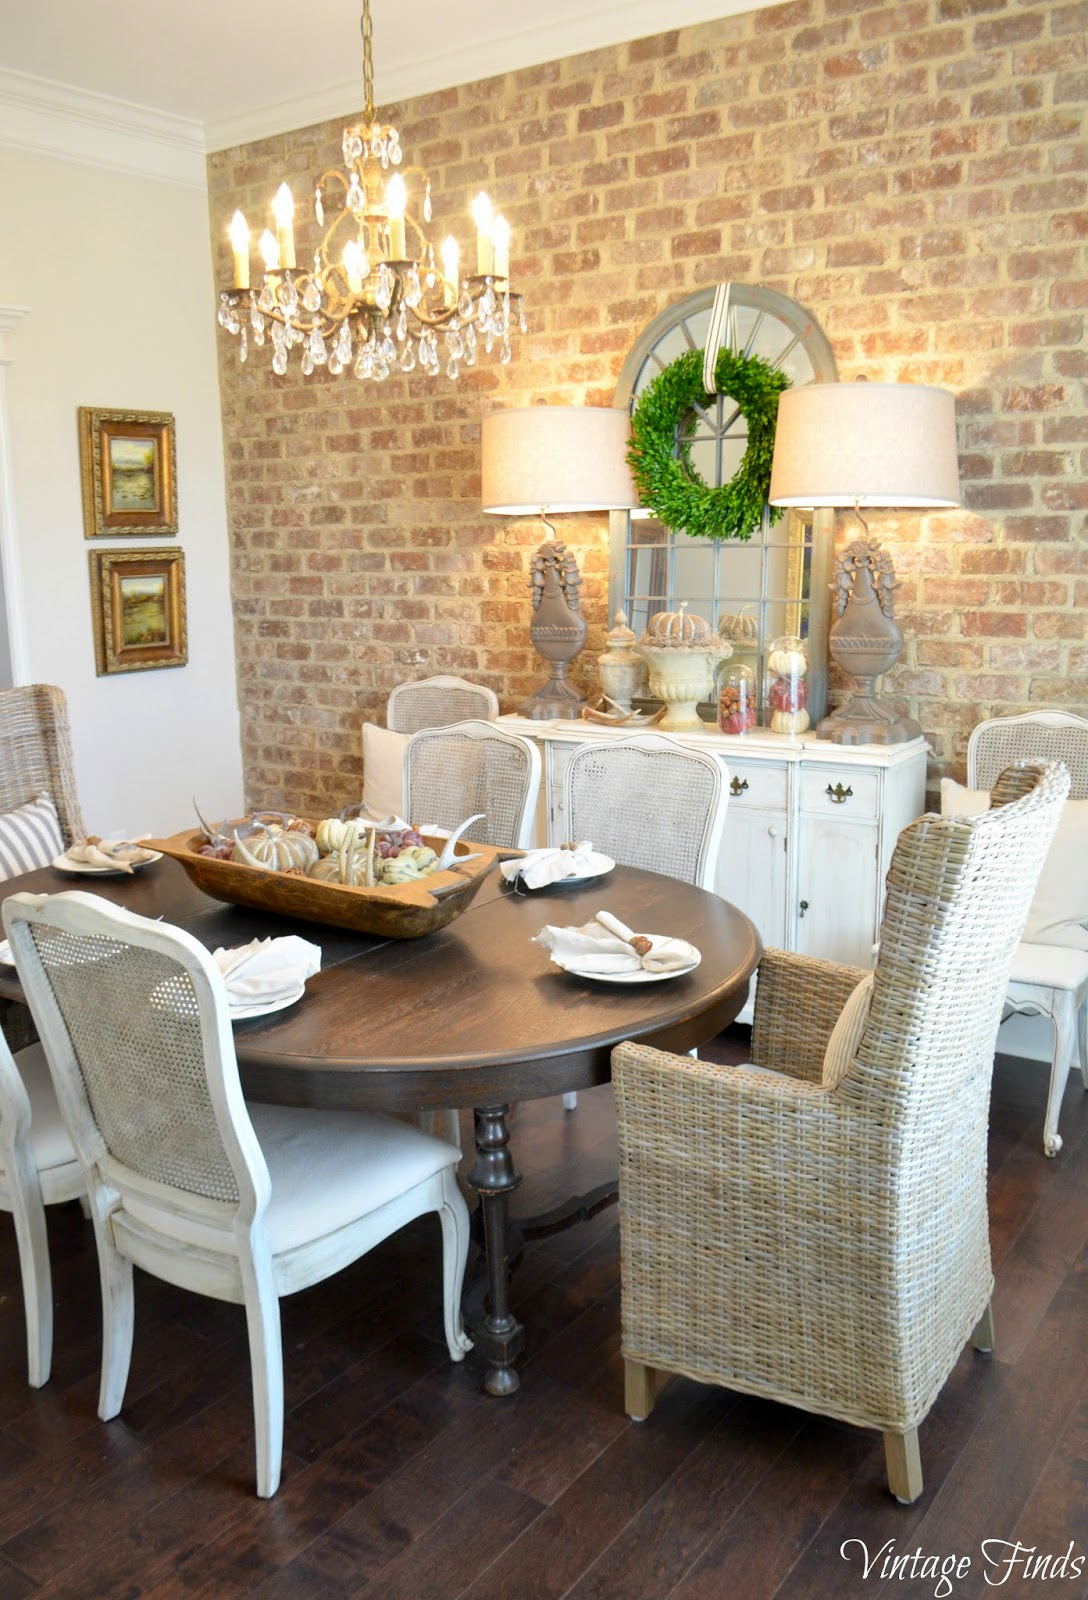 Vintage Finds: Fall Dining Room